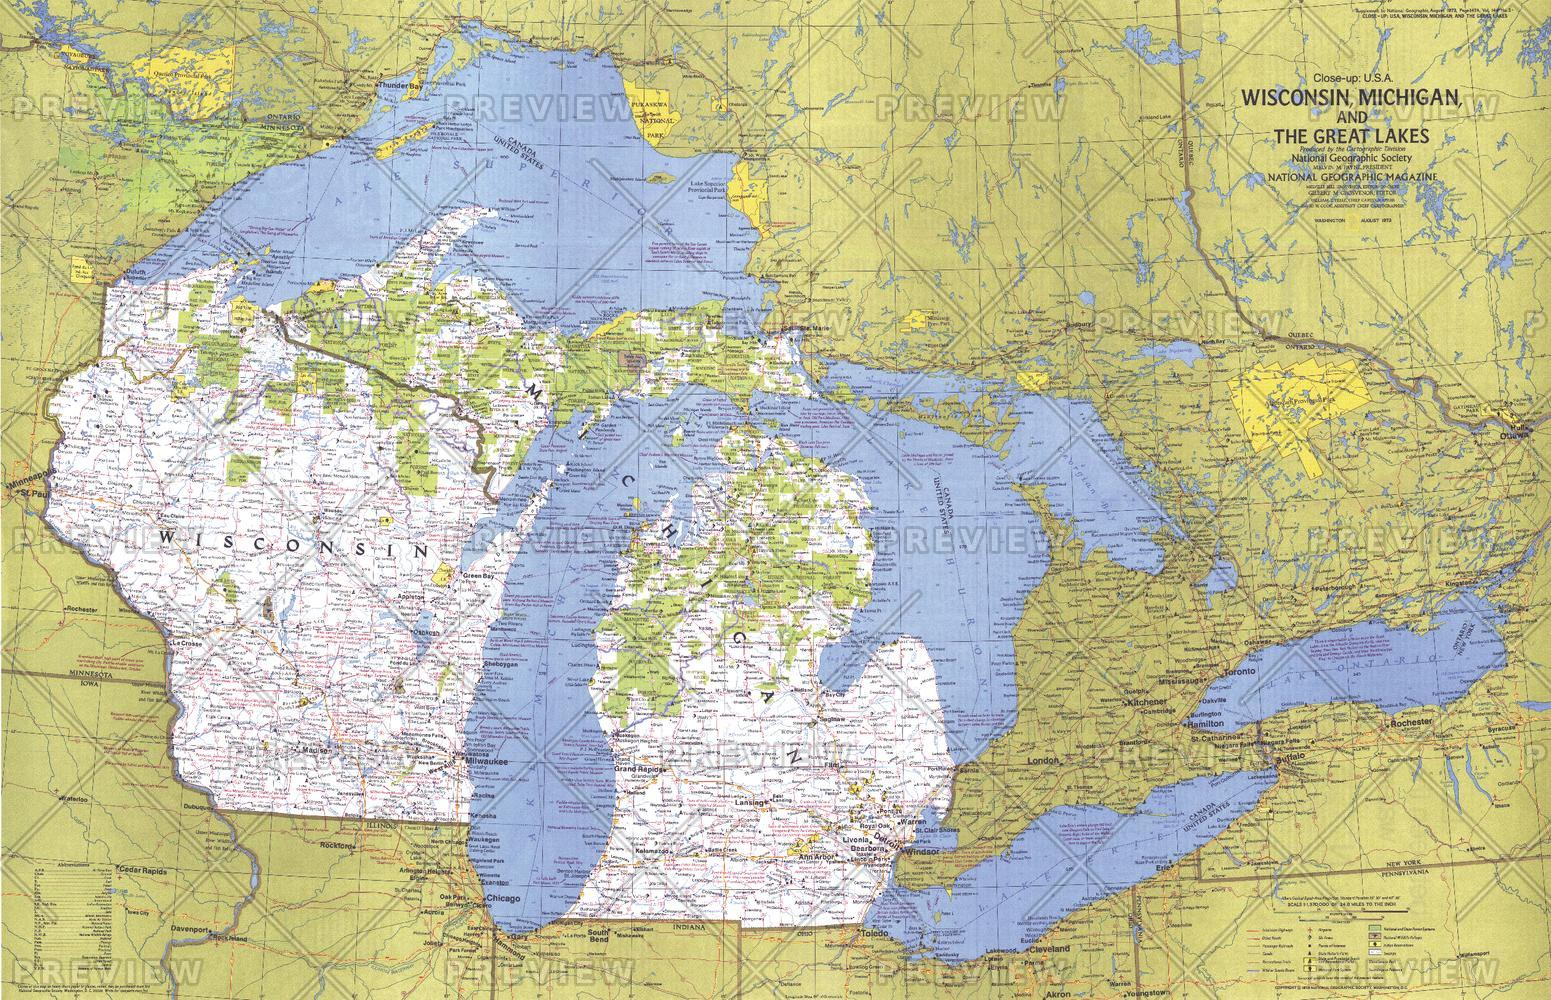 Close-up USA, Wisconsin, Michigan, and the Great Lakes  -  Published 1973